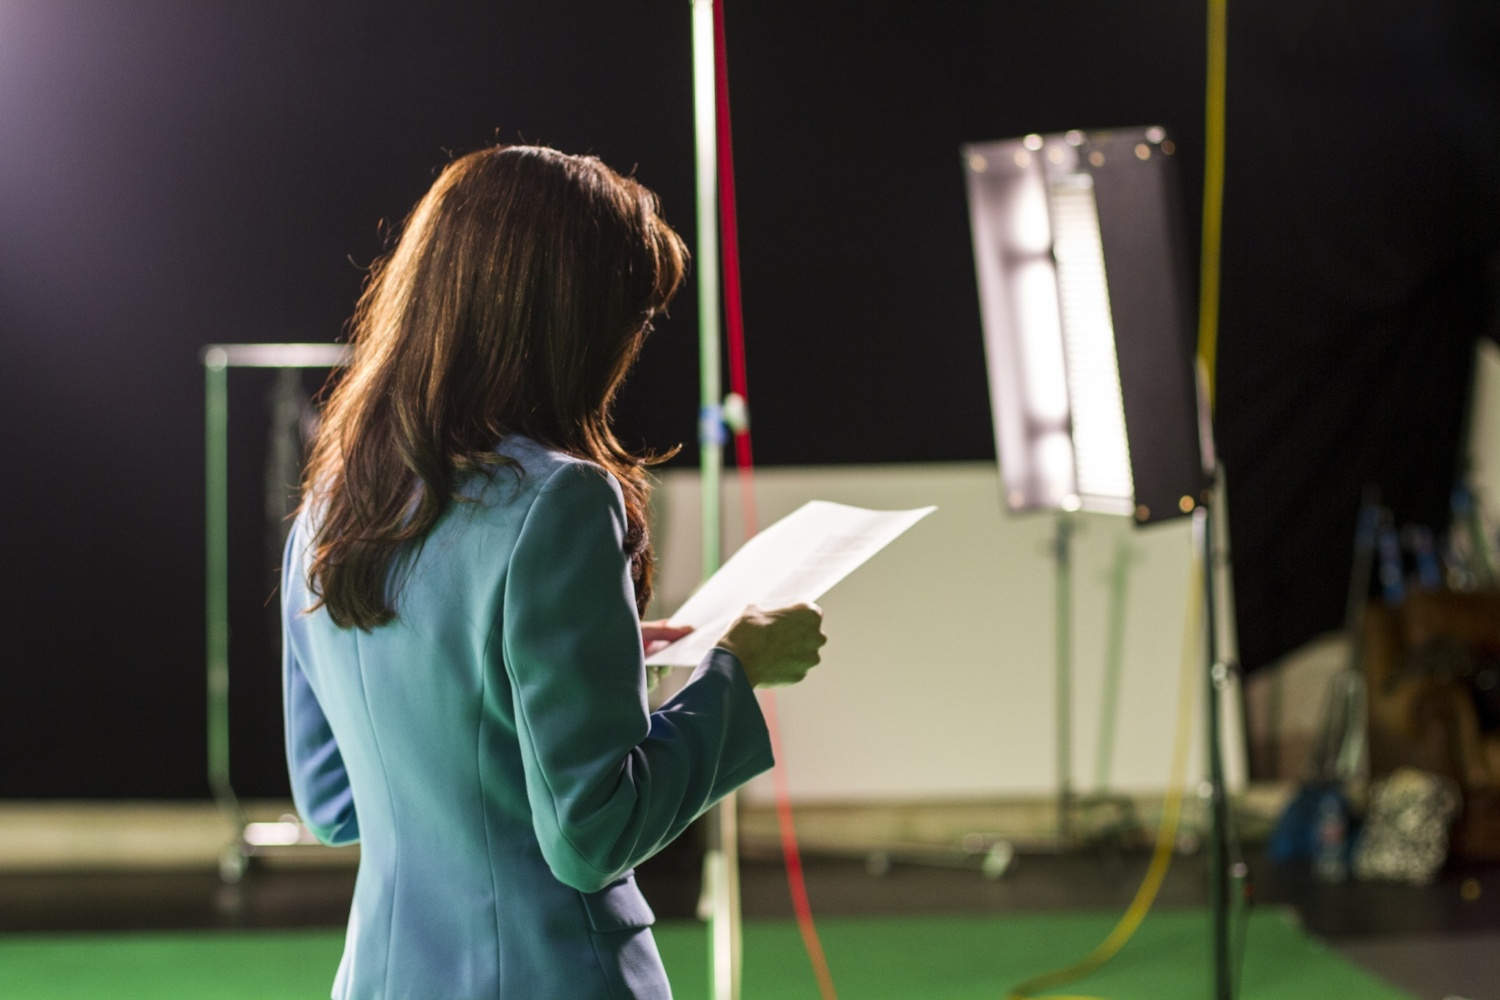 17 Essential Video Production Questions to Ask Before